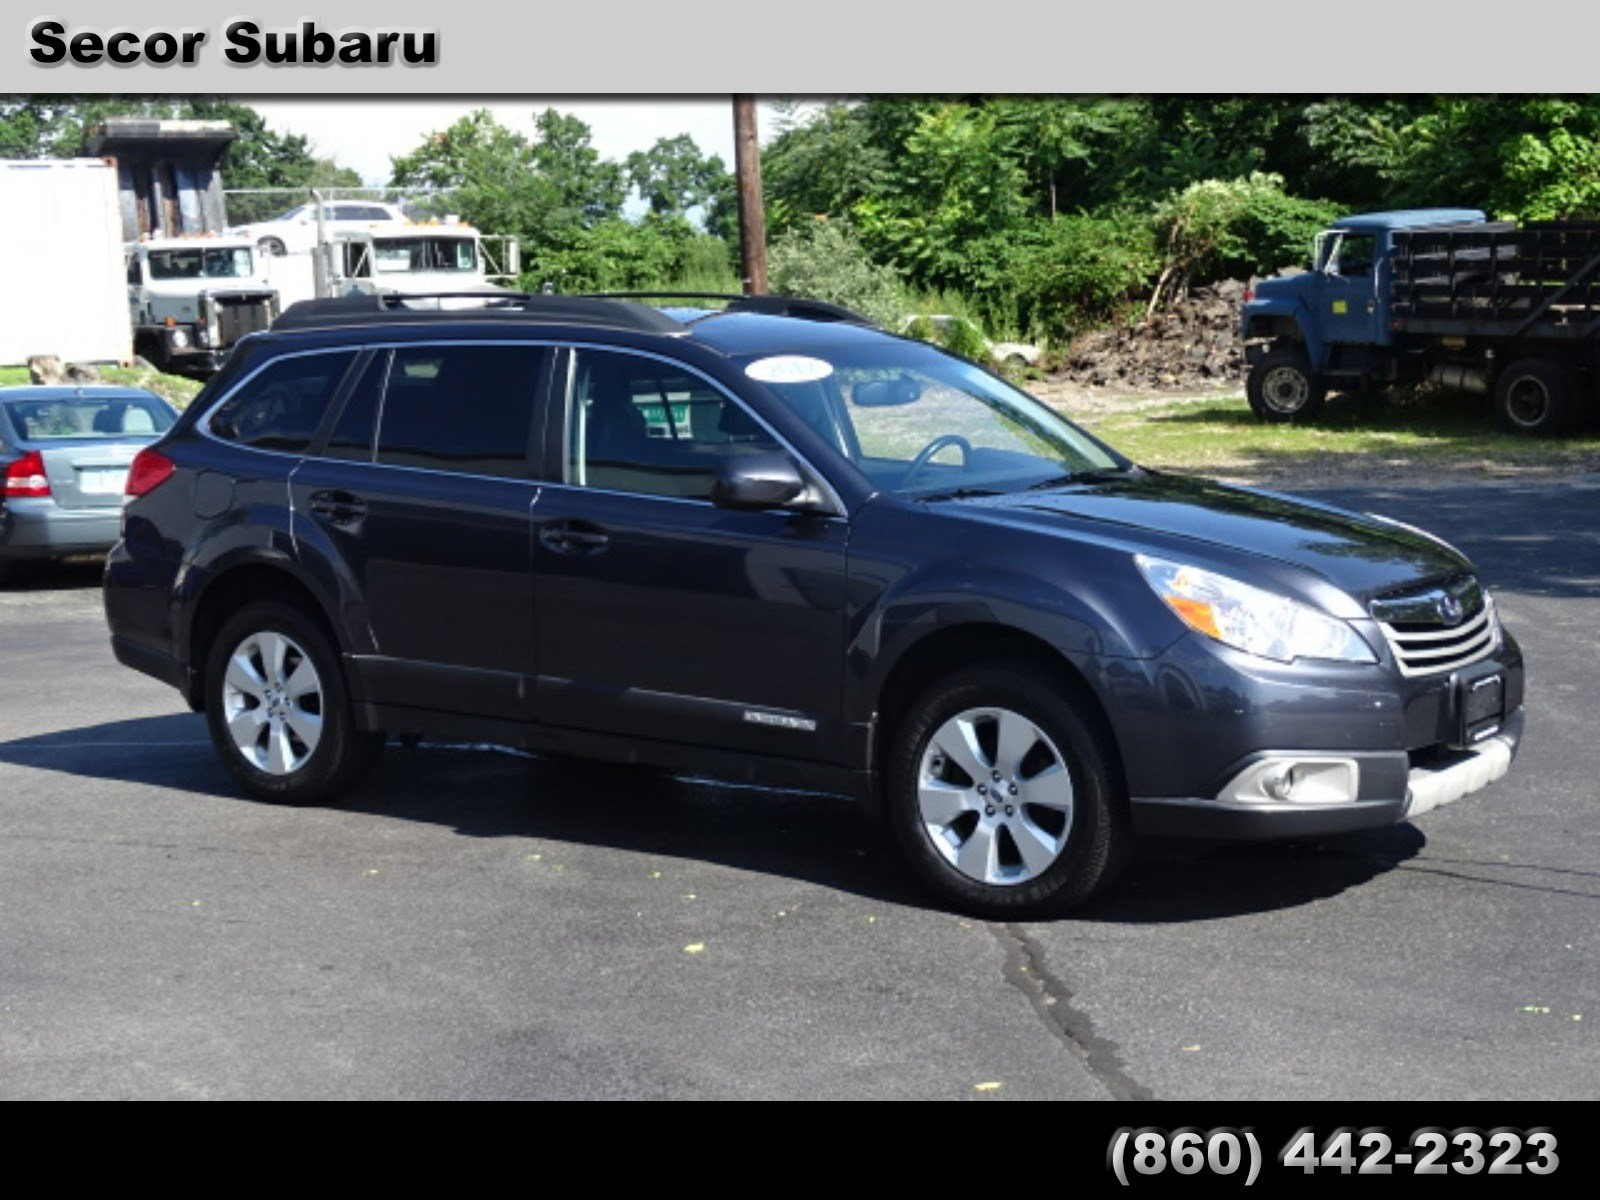 2012 Subaru Outback 2.5i Limited Wagon